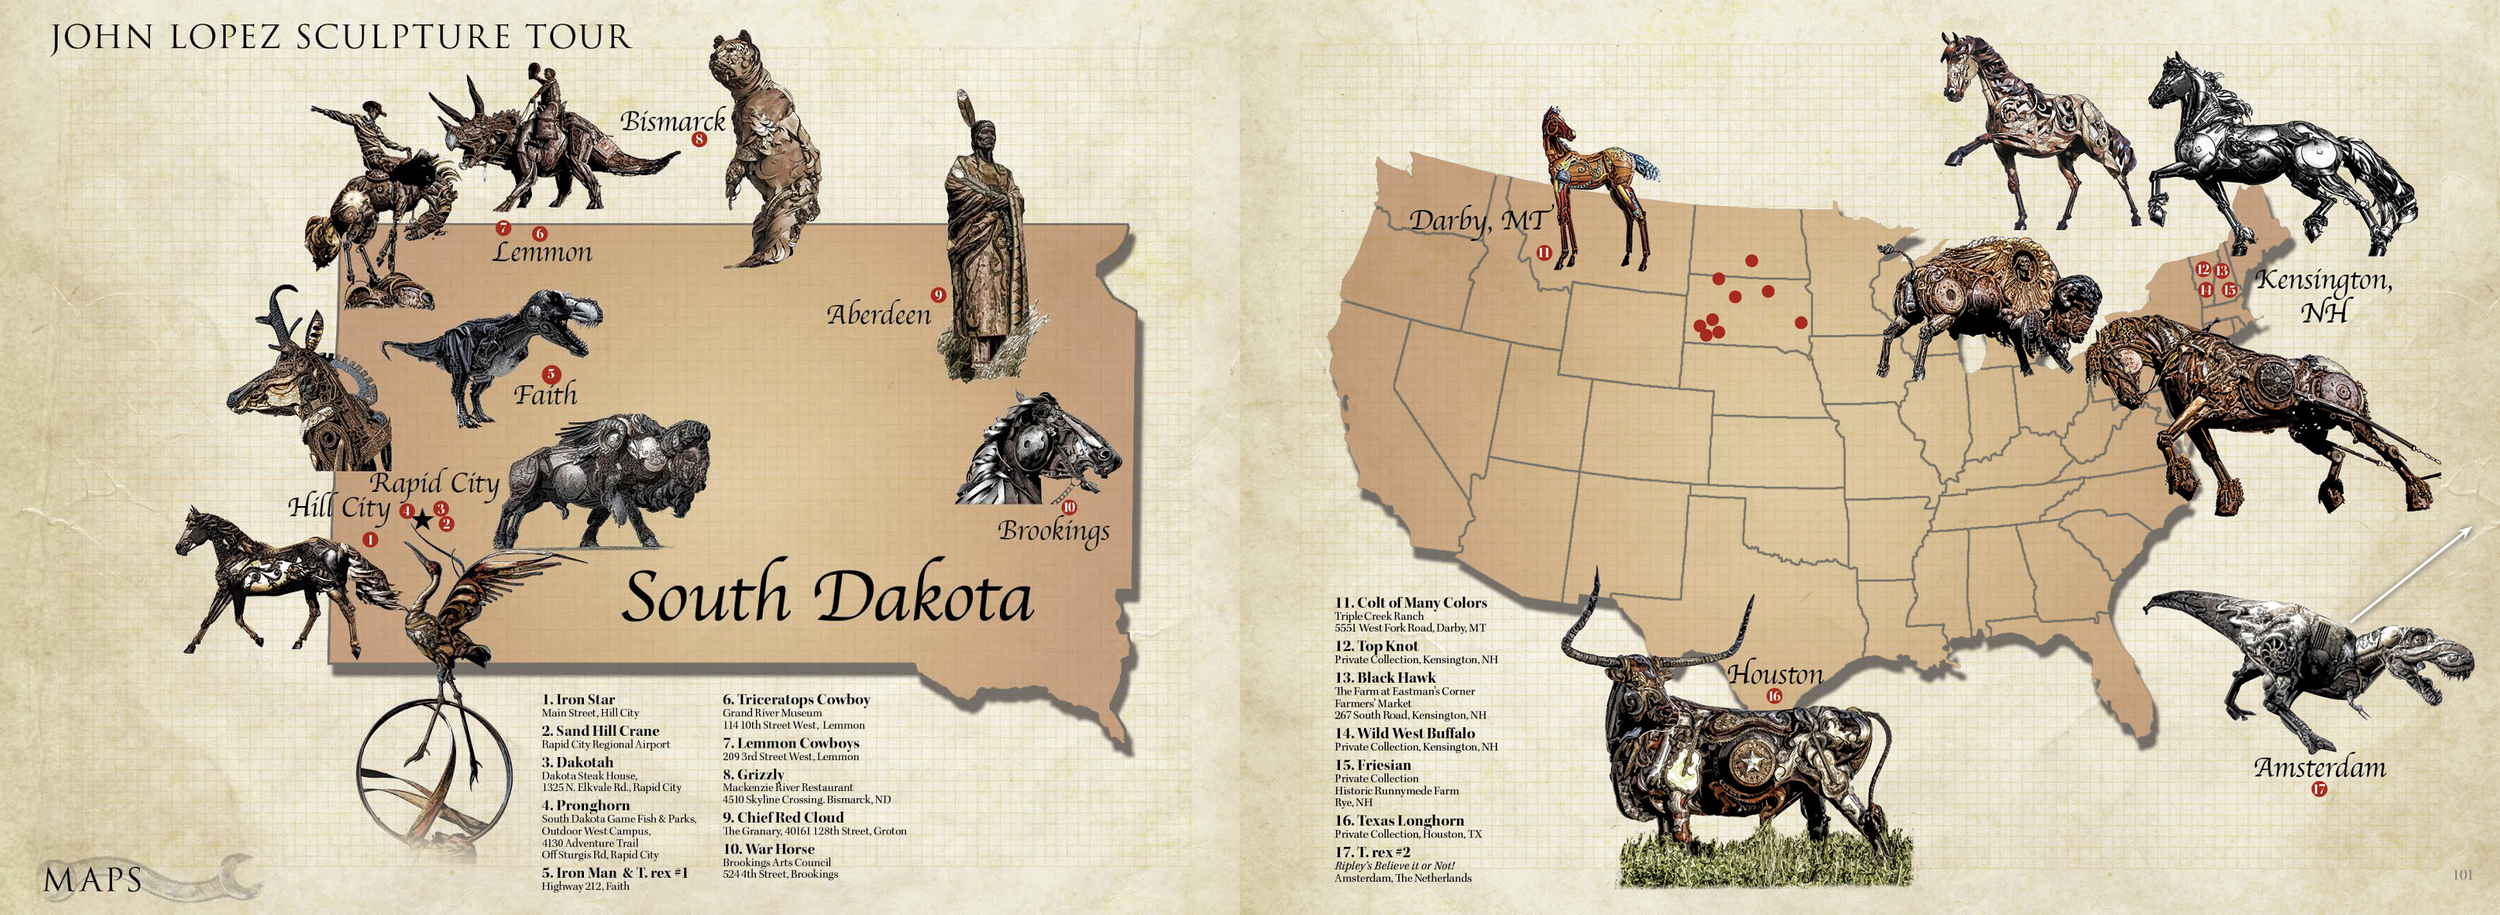 This map lists all of John's installations in South Dakota from Hill City, Rapid City, Faith, Lemmon and even a T.Rex all the over to Amsterdam.